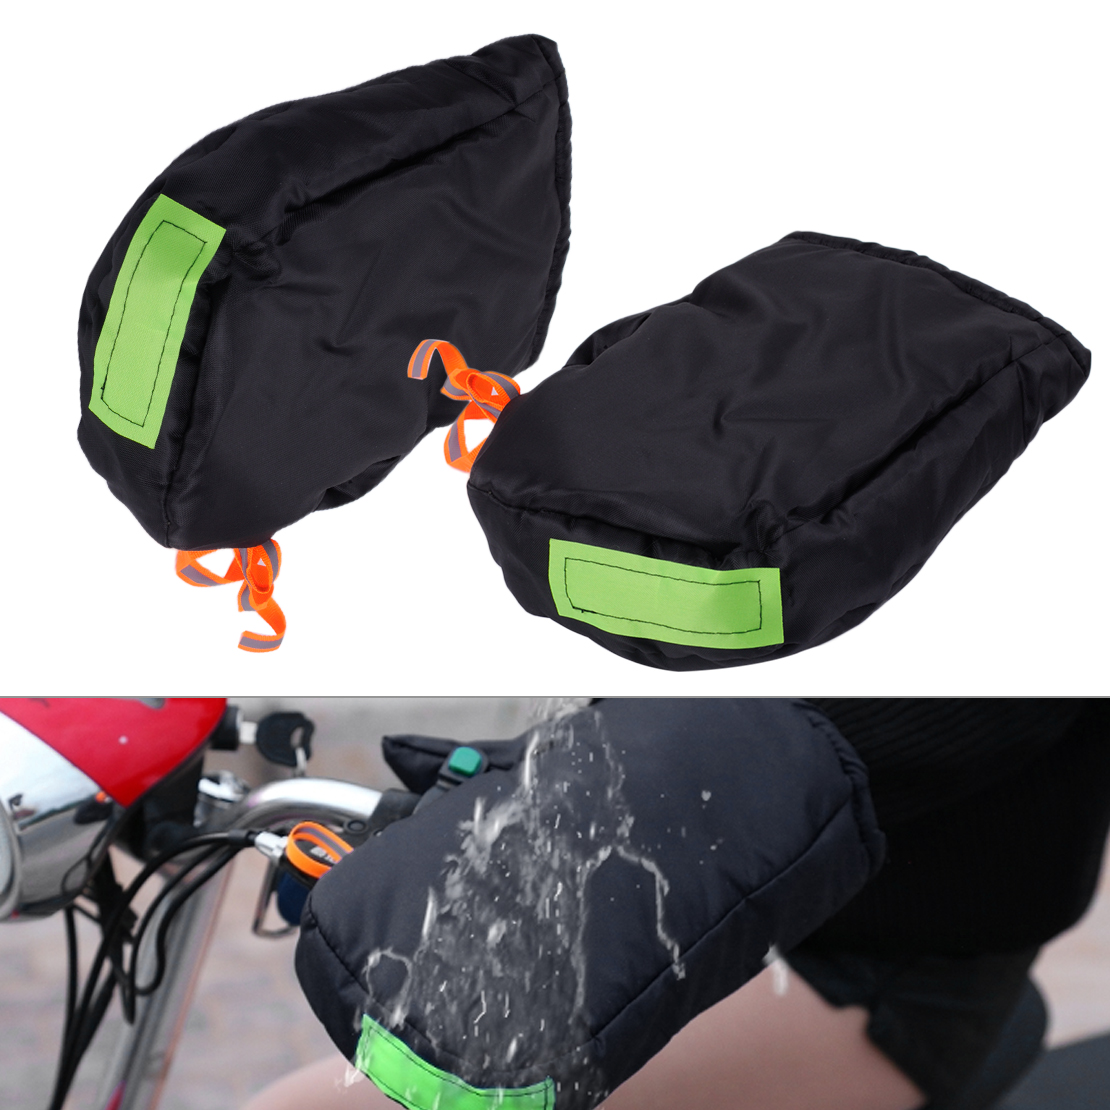 лучшая цена CITALL Car 1 Pair of Mitts Thermal Waterproof Motorcycle Grip HandleBar Muffs Hand Protector Mitts Gloves